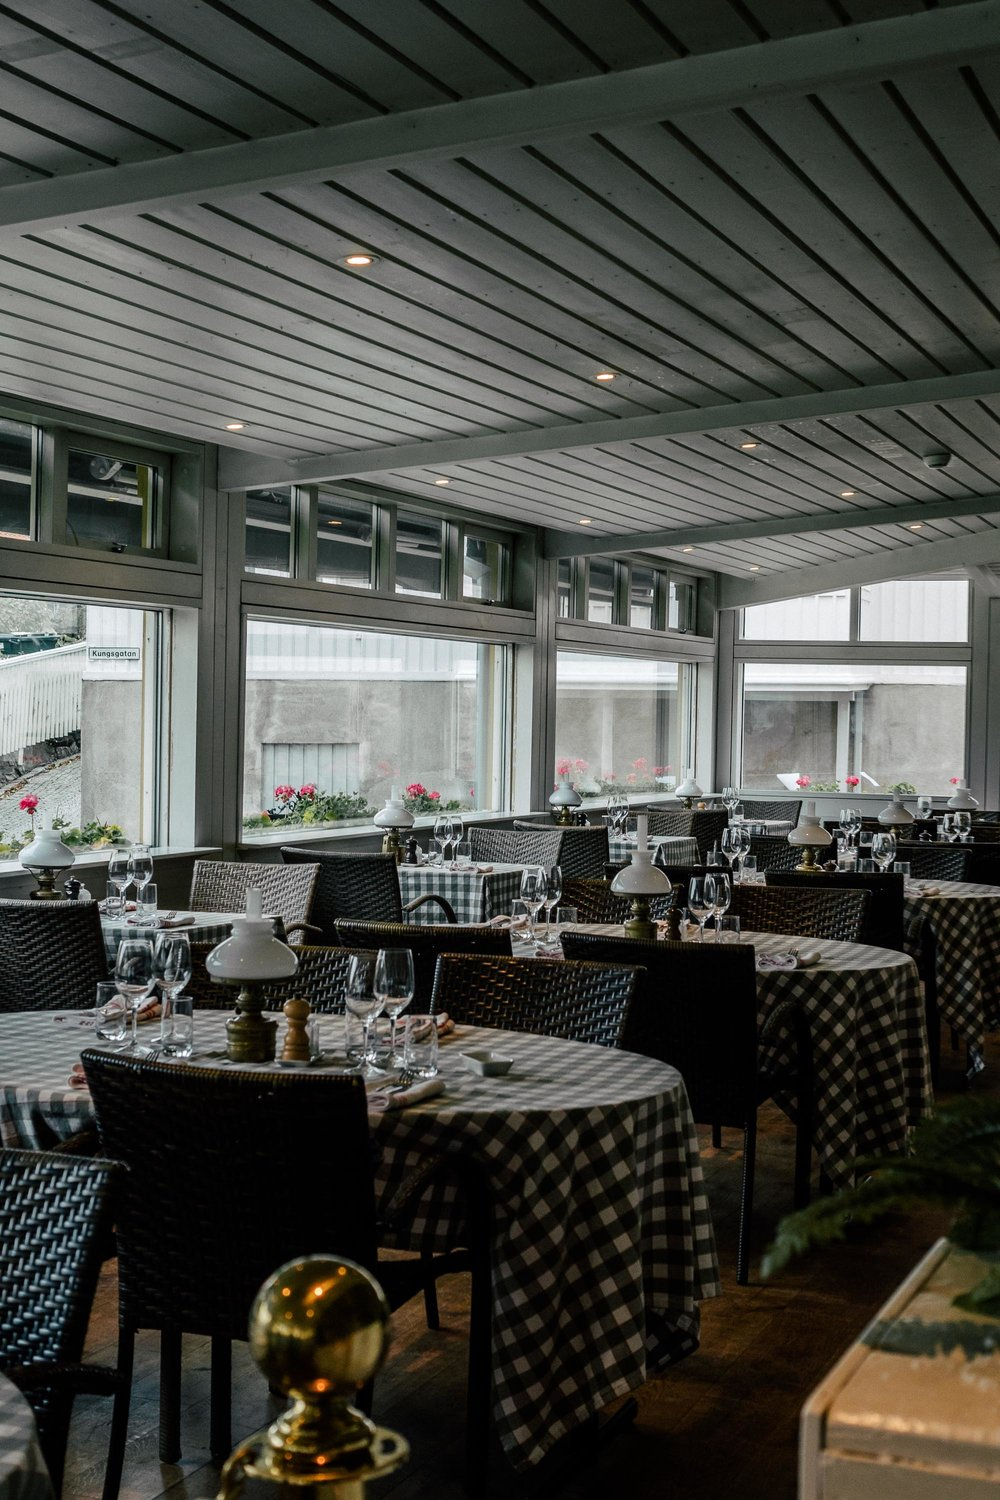 The main dining room at the Grand Tenan restaurant within Grand Marstrand Hotel